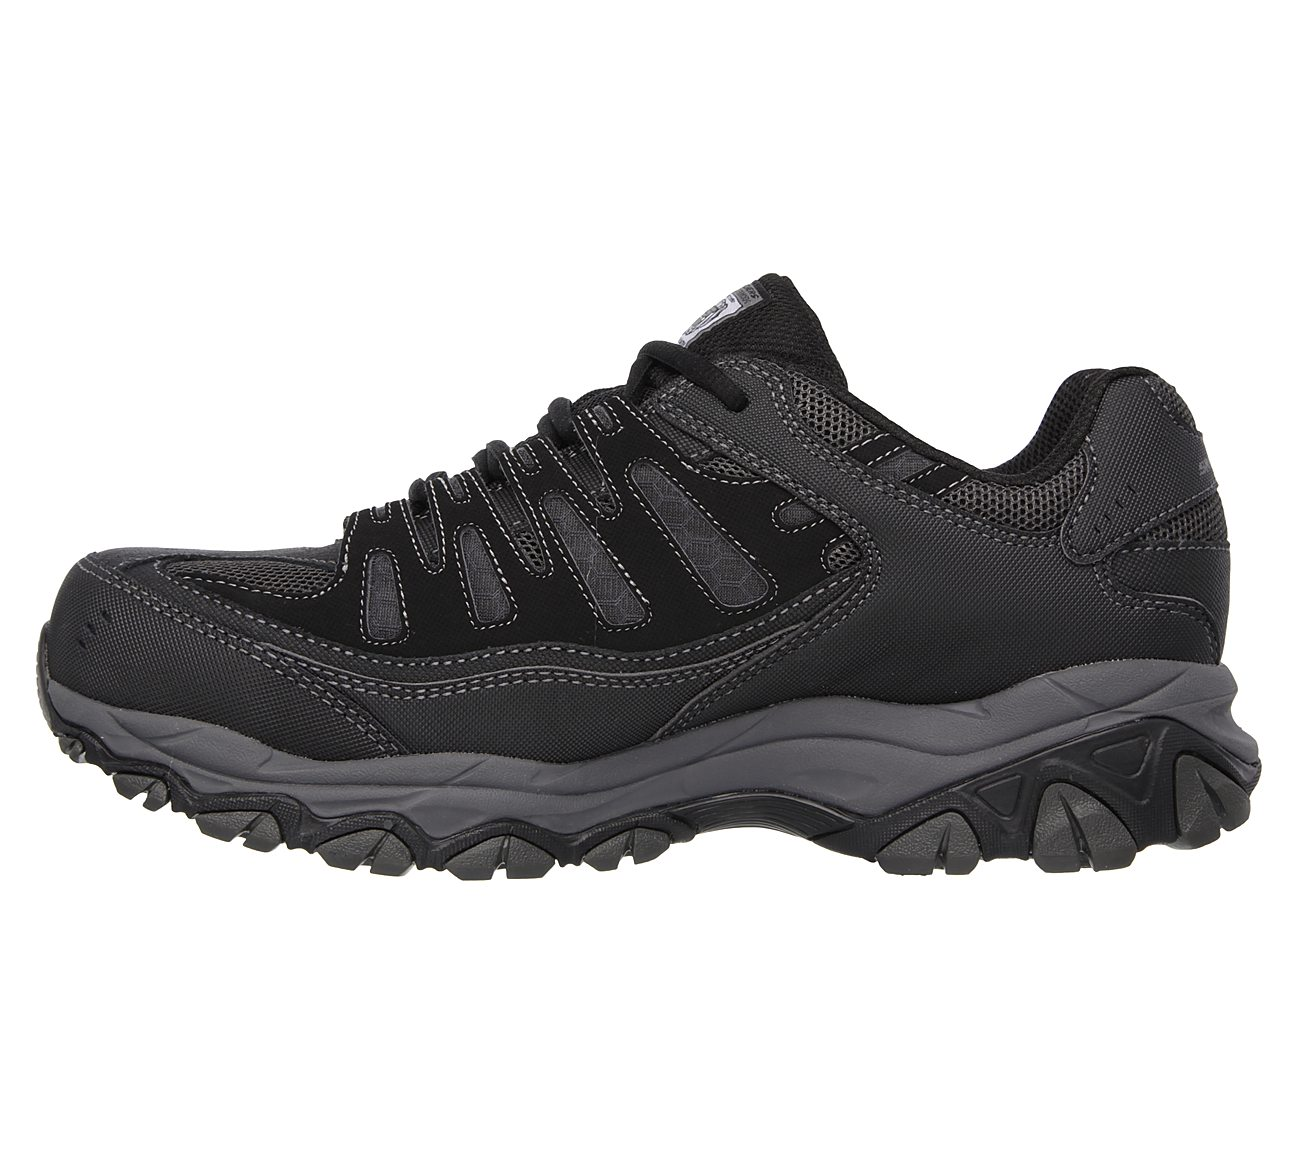 Skechers Men's Work Relaxed Fit Crankton Steel Toe Shoe,Black/Charcoal,US 7.5 W